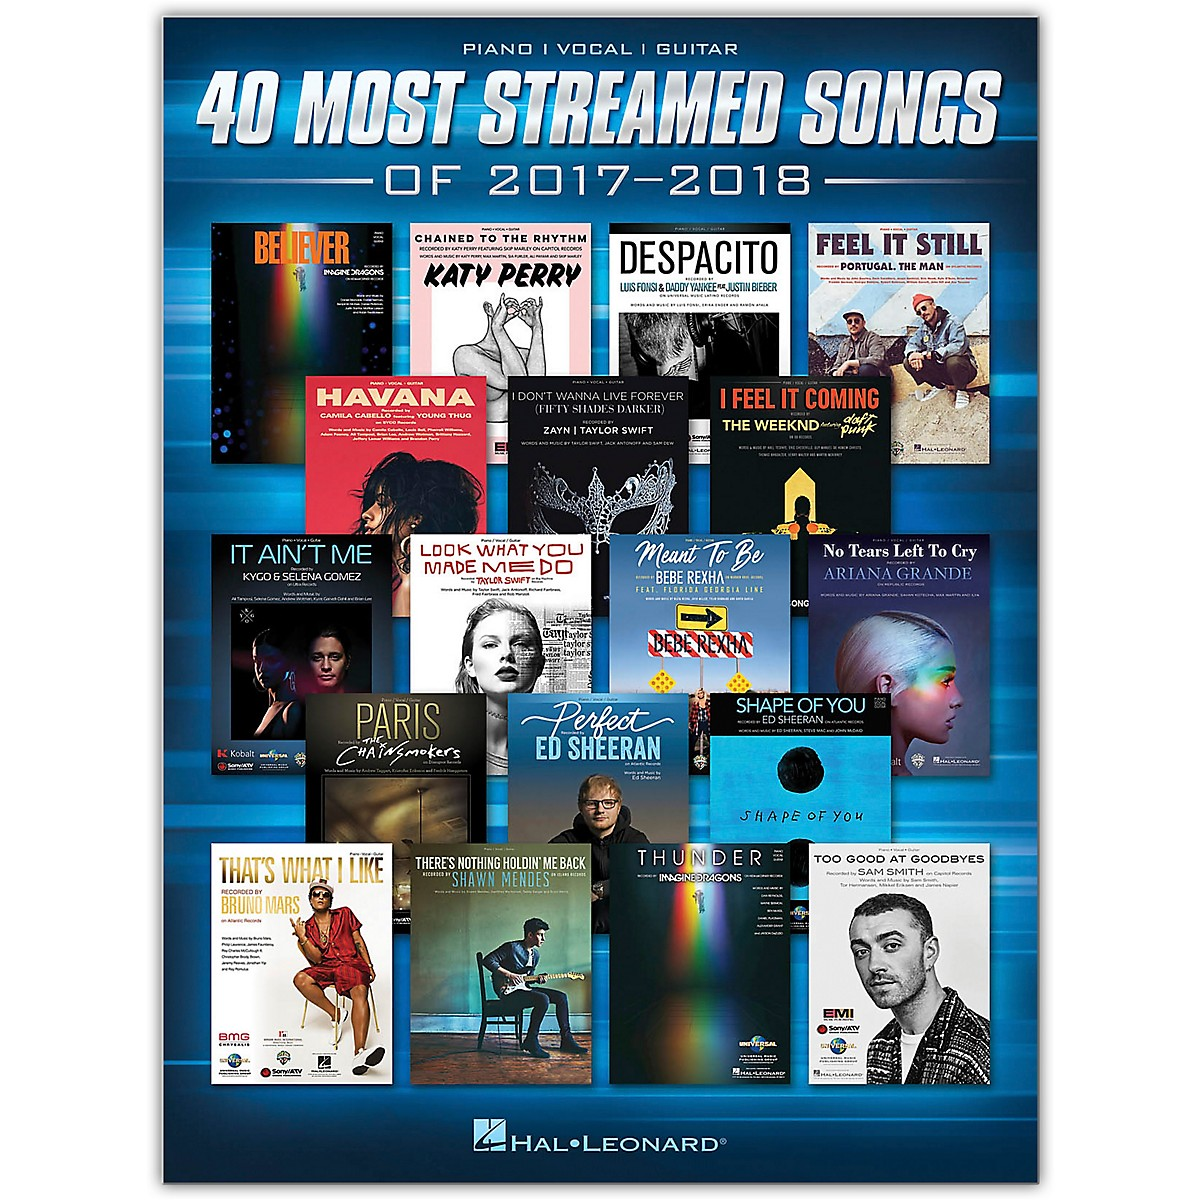 Hal Leonard 40 Most Streamed Songs of 2017-2018 Piano/Vocal/Guitar Songbook